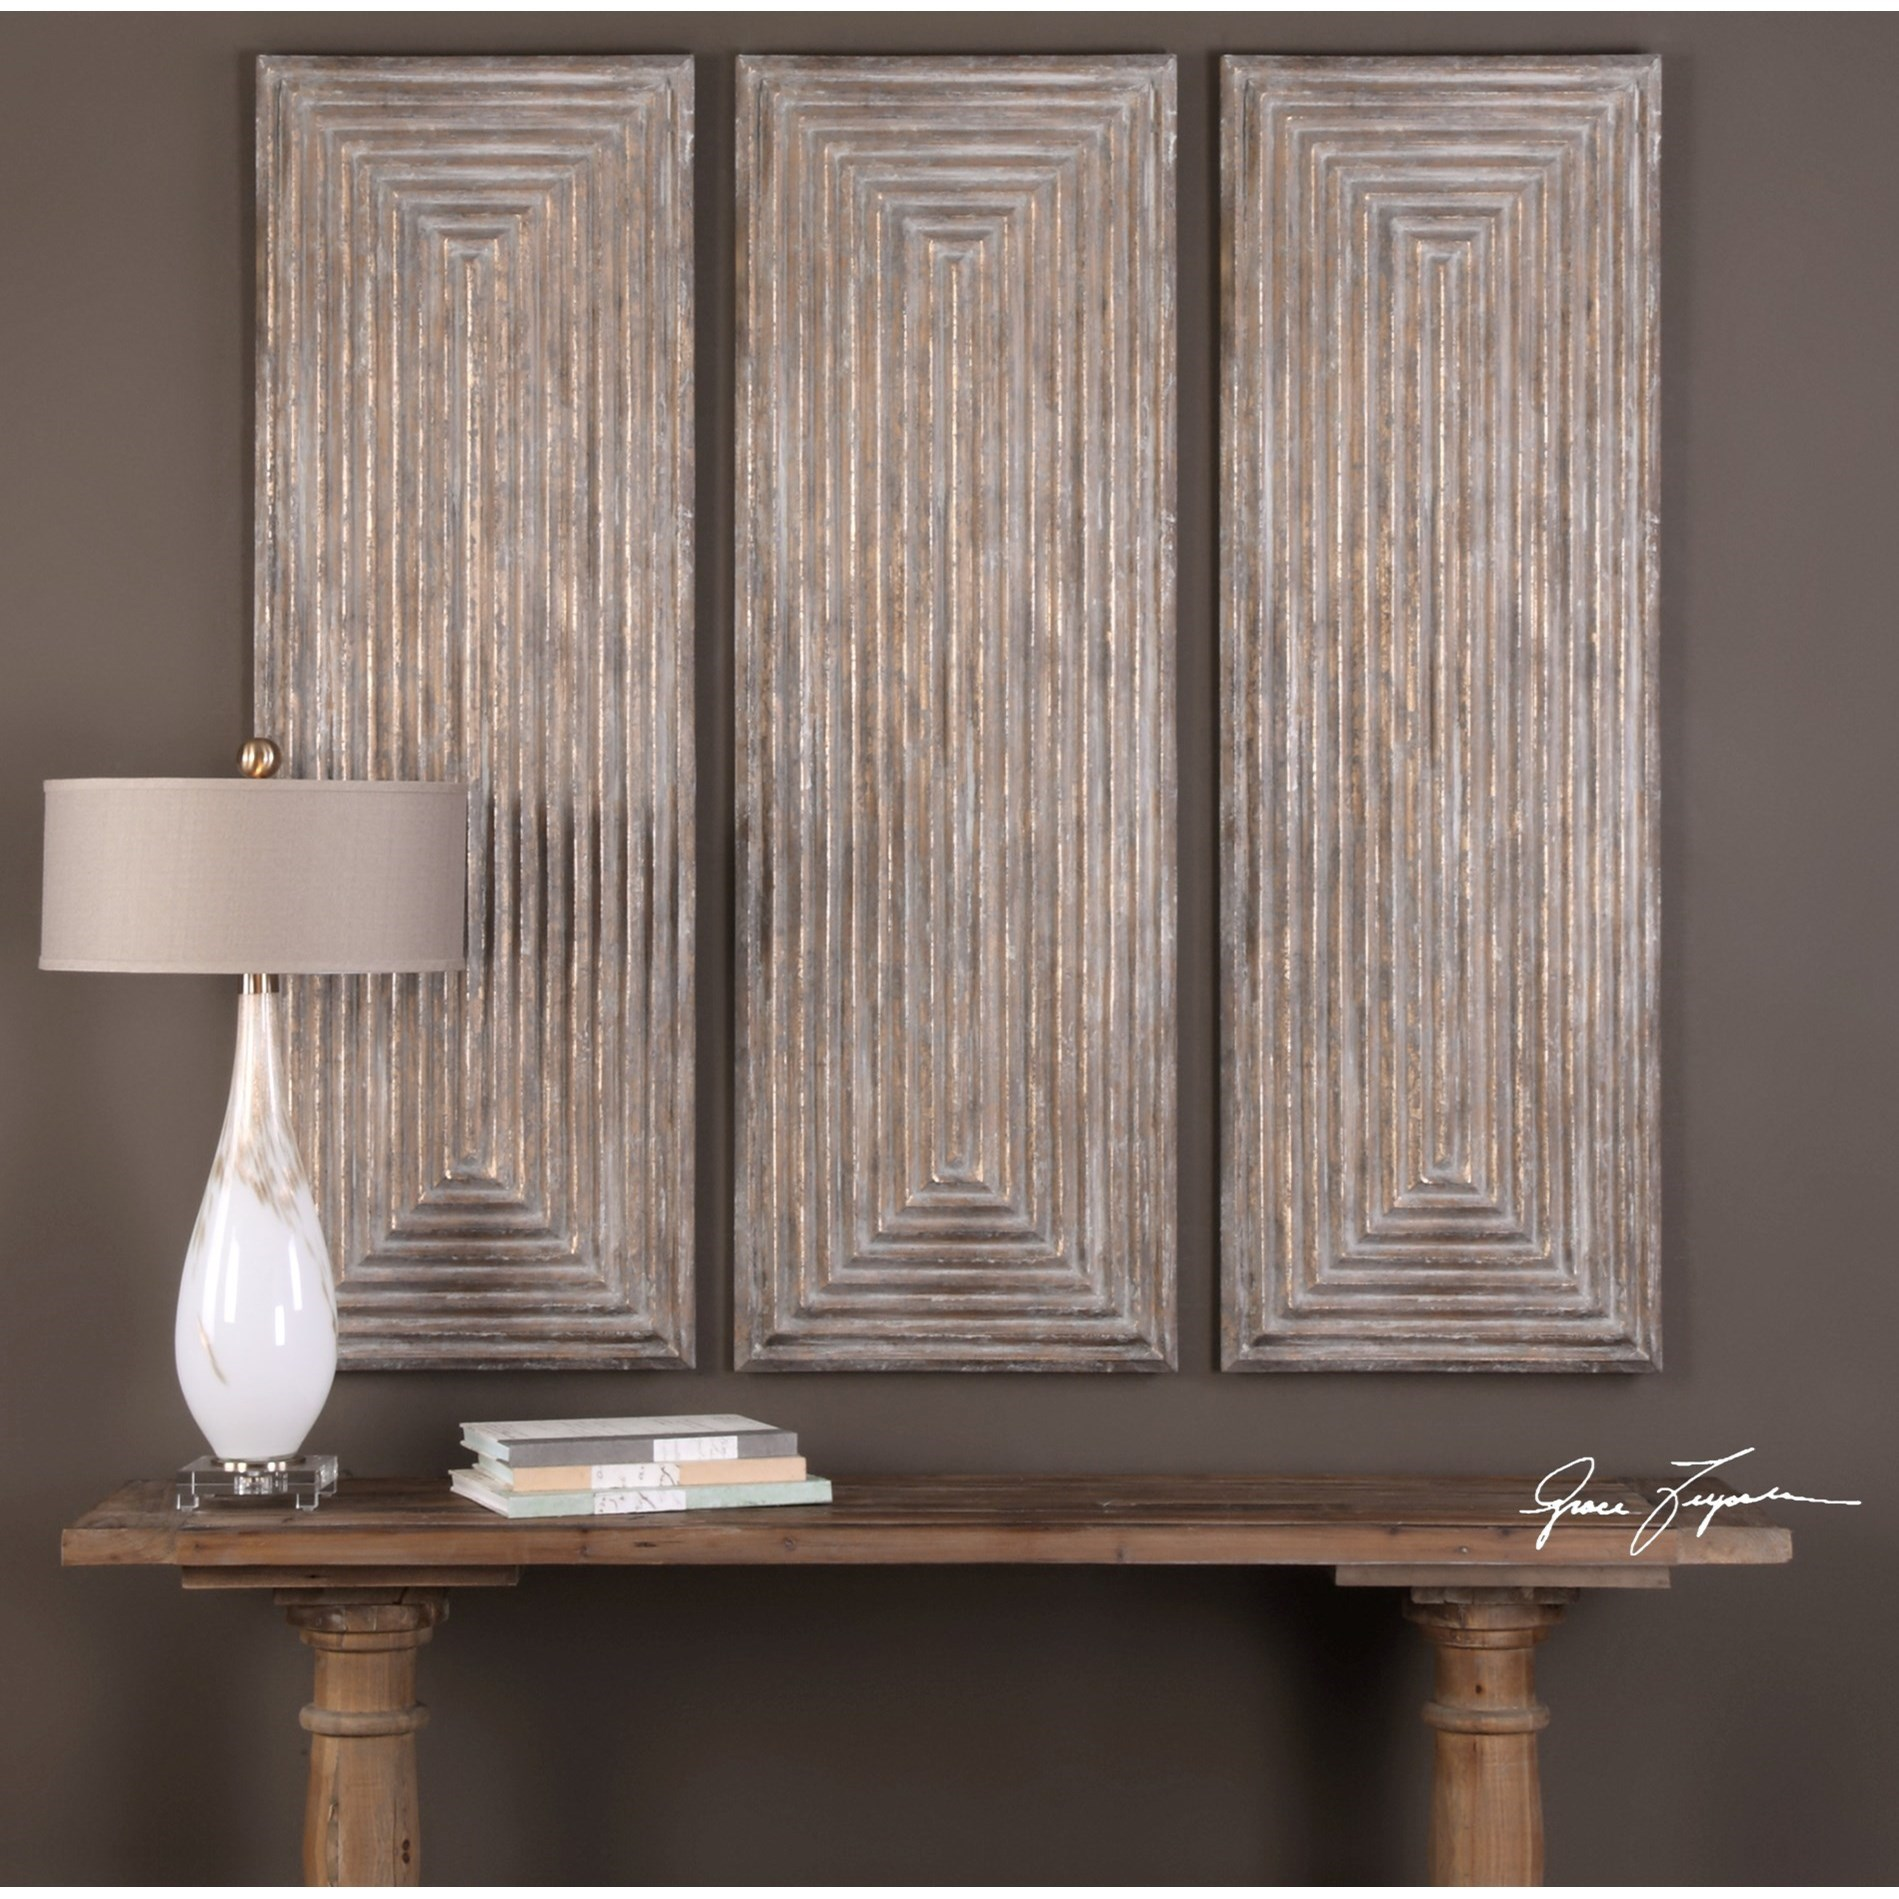 Best Uttermost Alternative Wall Decor 04060 Lokono Panel Del This Month